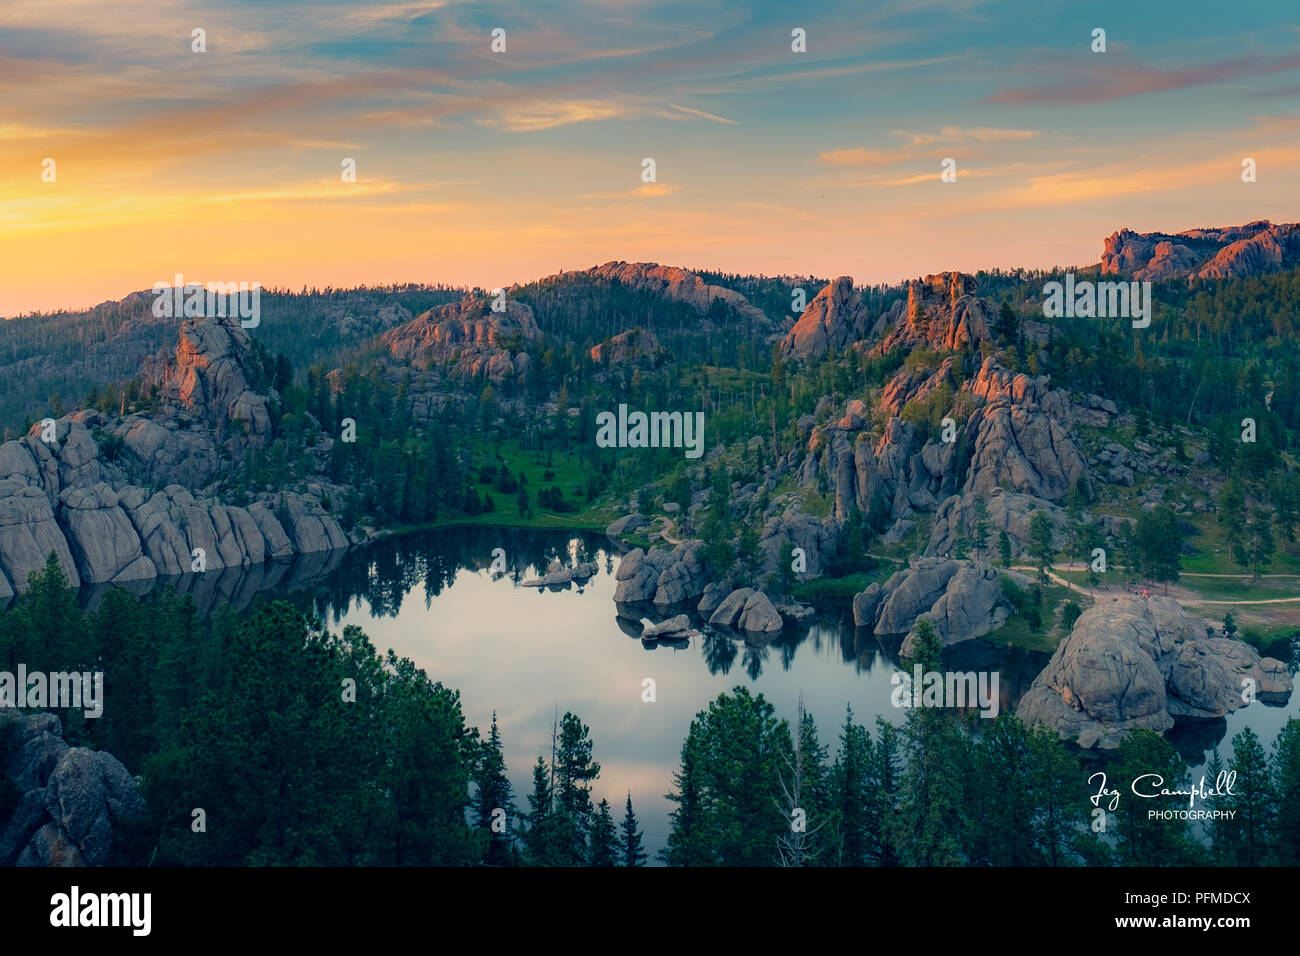 Sylvan Sunset - Stock Image